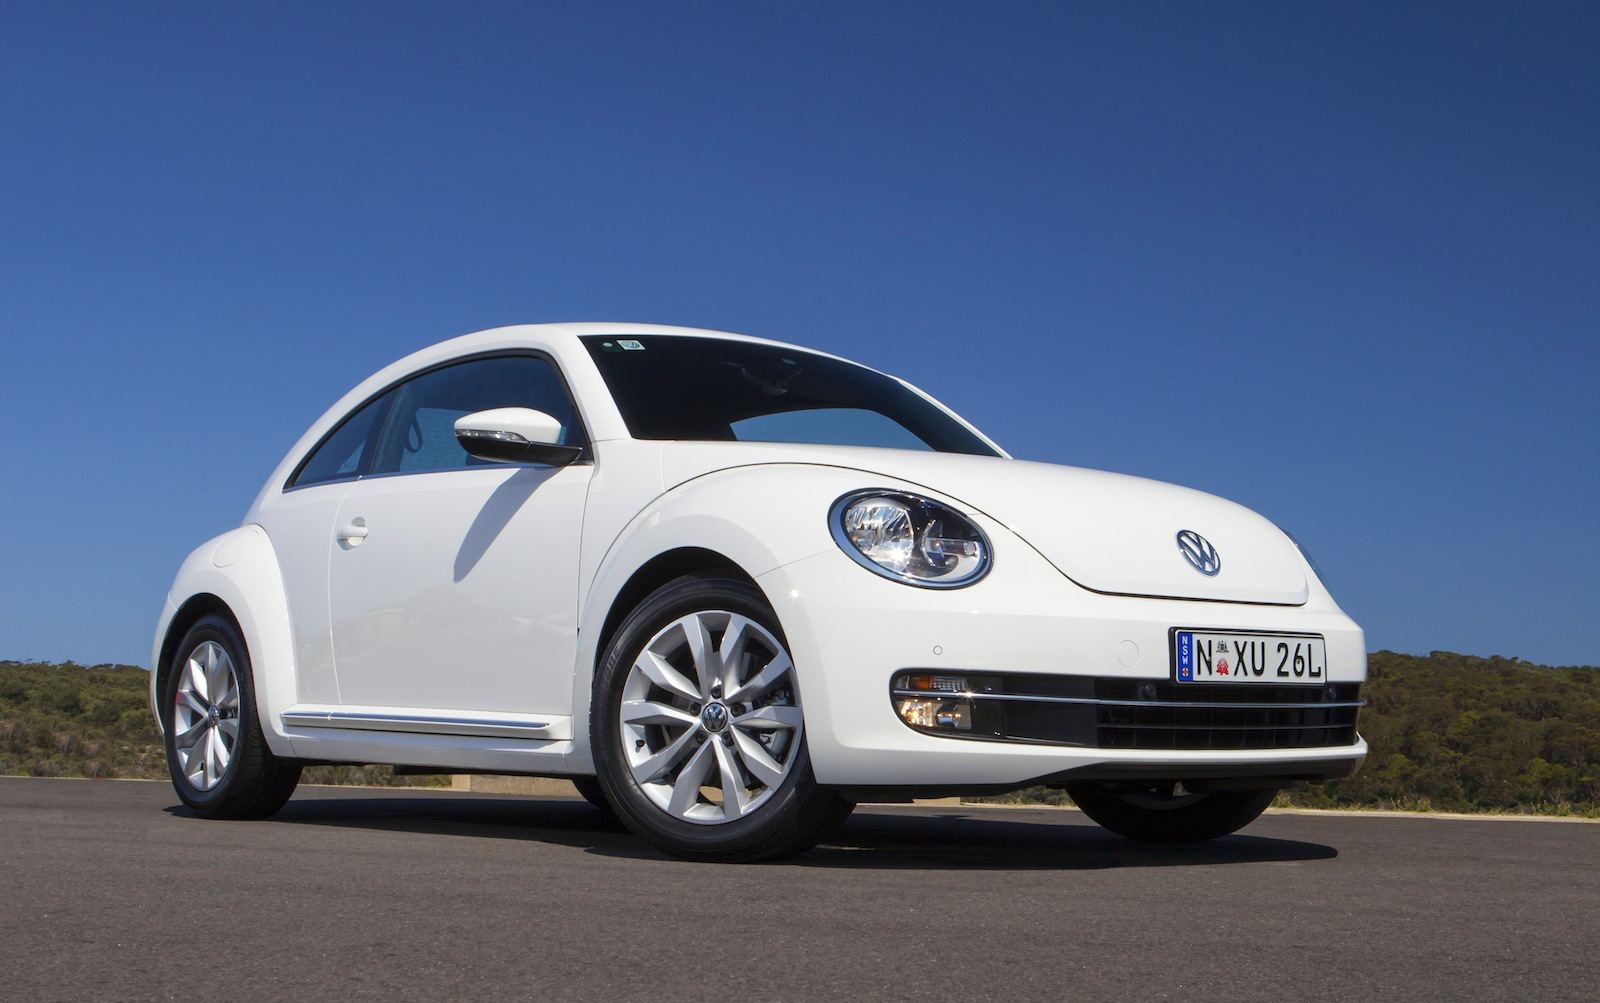 2013 volkswagen beetle pricing and specifications photos 1 of 7. Black Bedroom Furniture Sets. Home Design Ideas